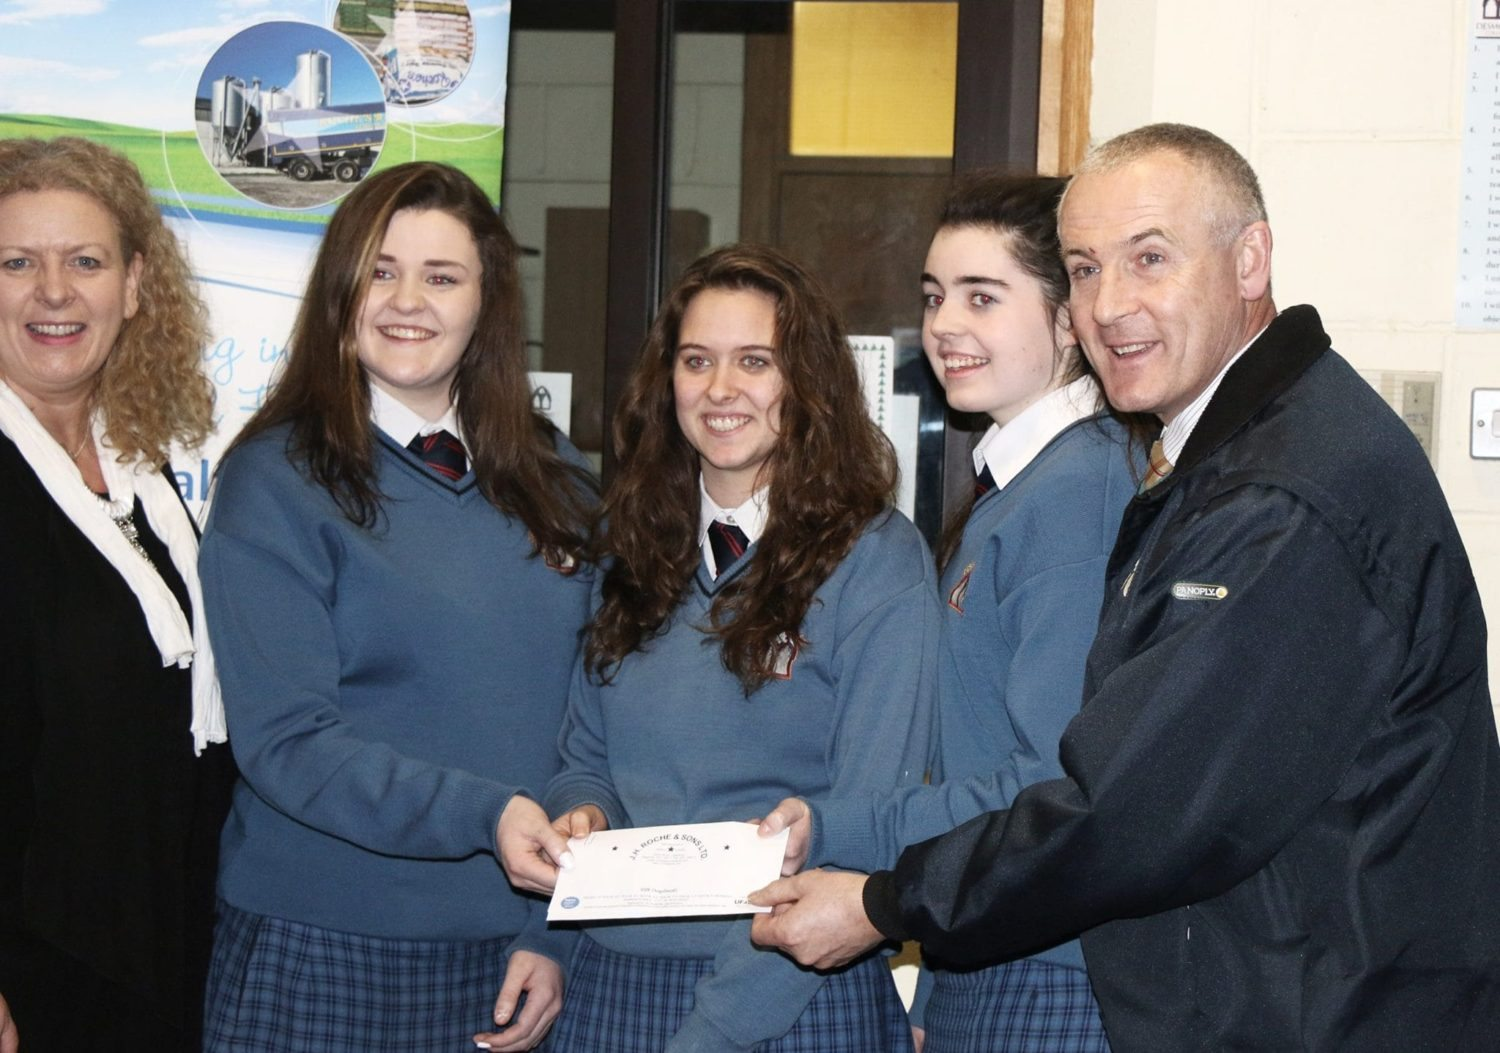 Bobby Roche and the representatives for the Young Scientist competition in Dublin today